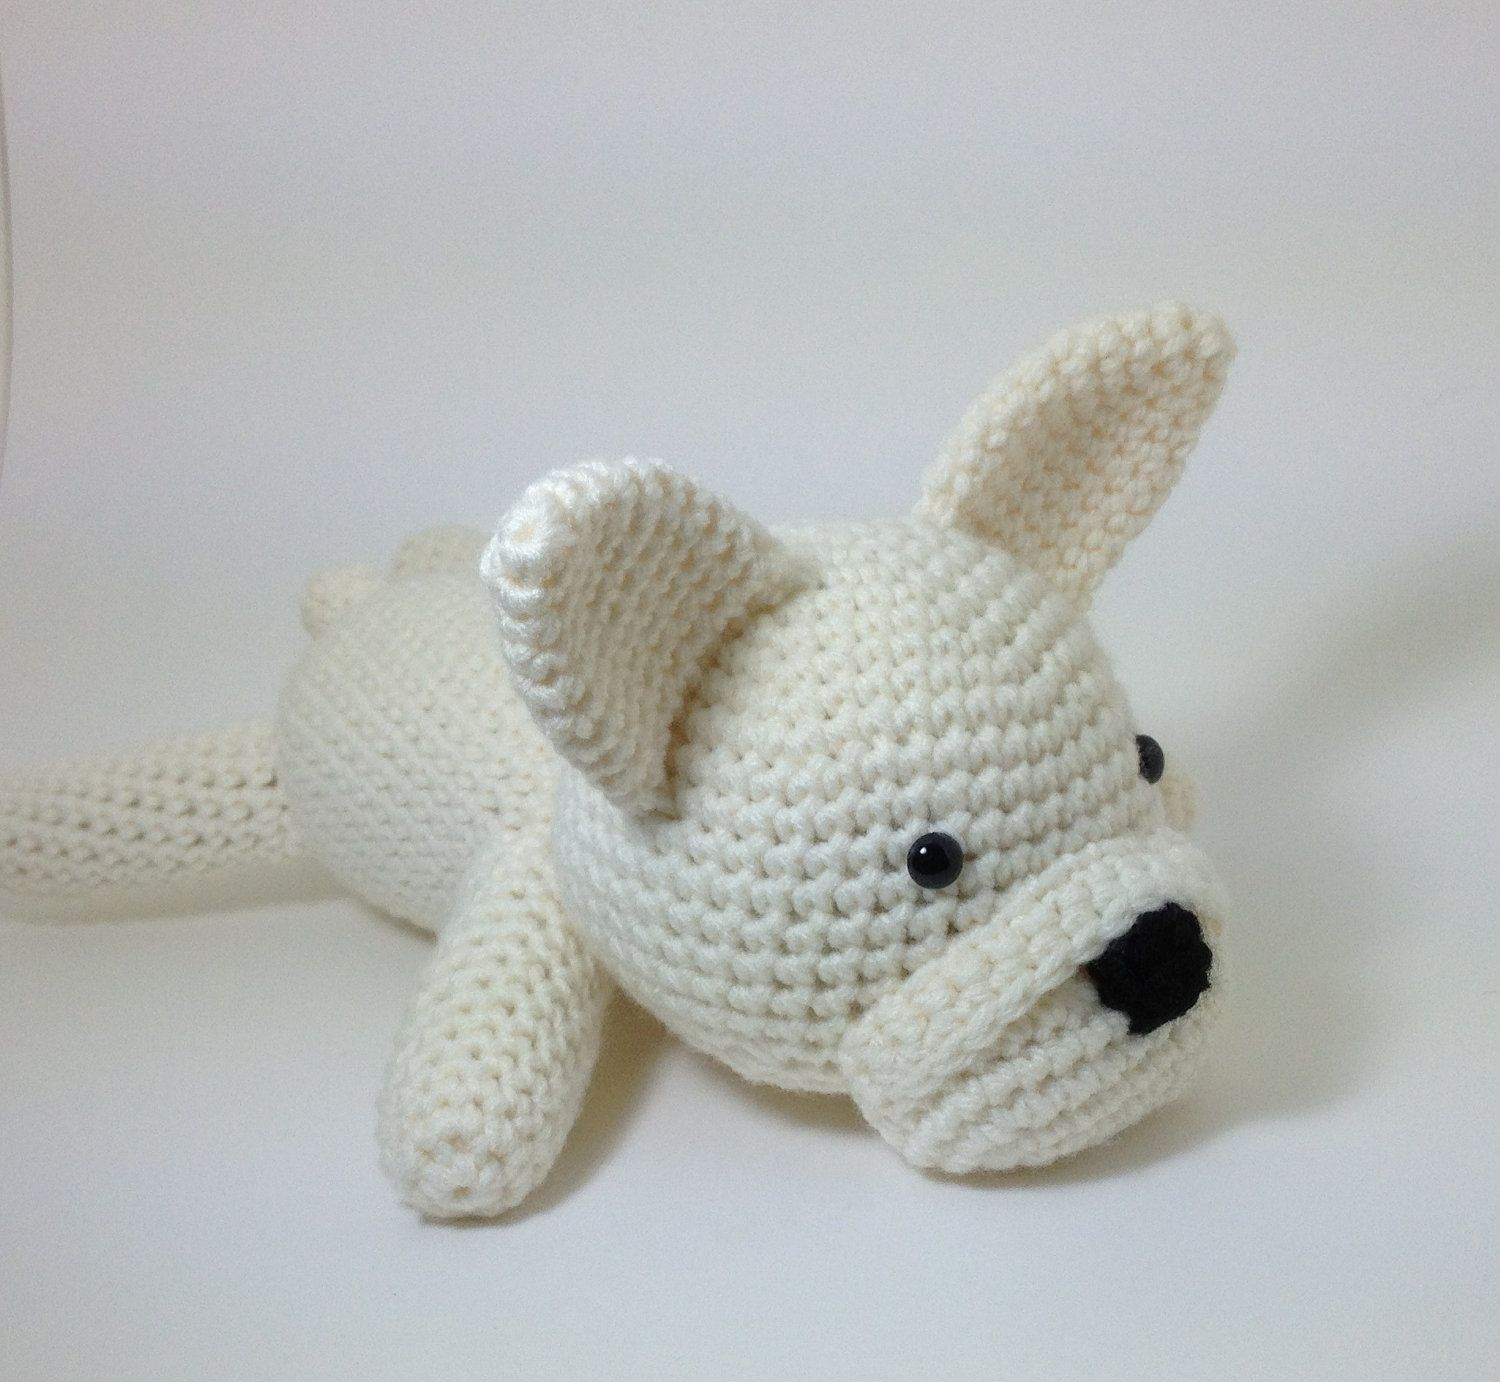 Bear Amigurumi Crochet Handmade Animal Crochet Stuffed Toys - Buy ... | 1382x1500